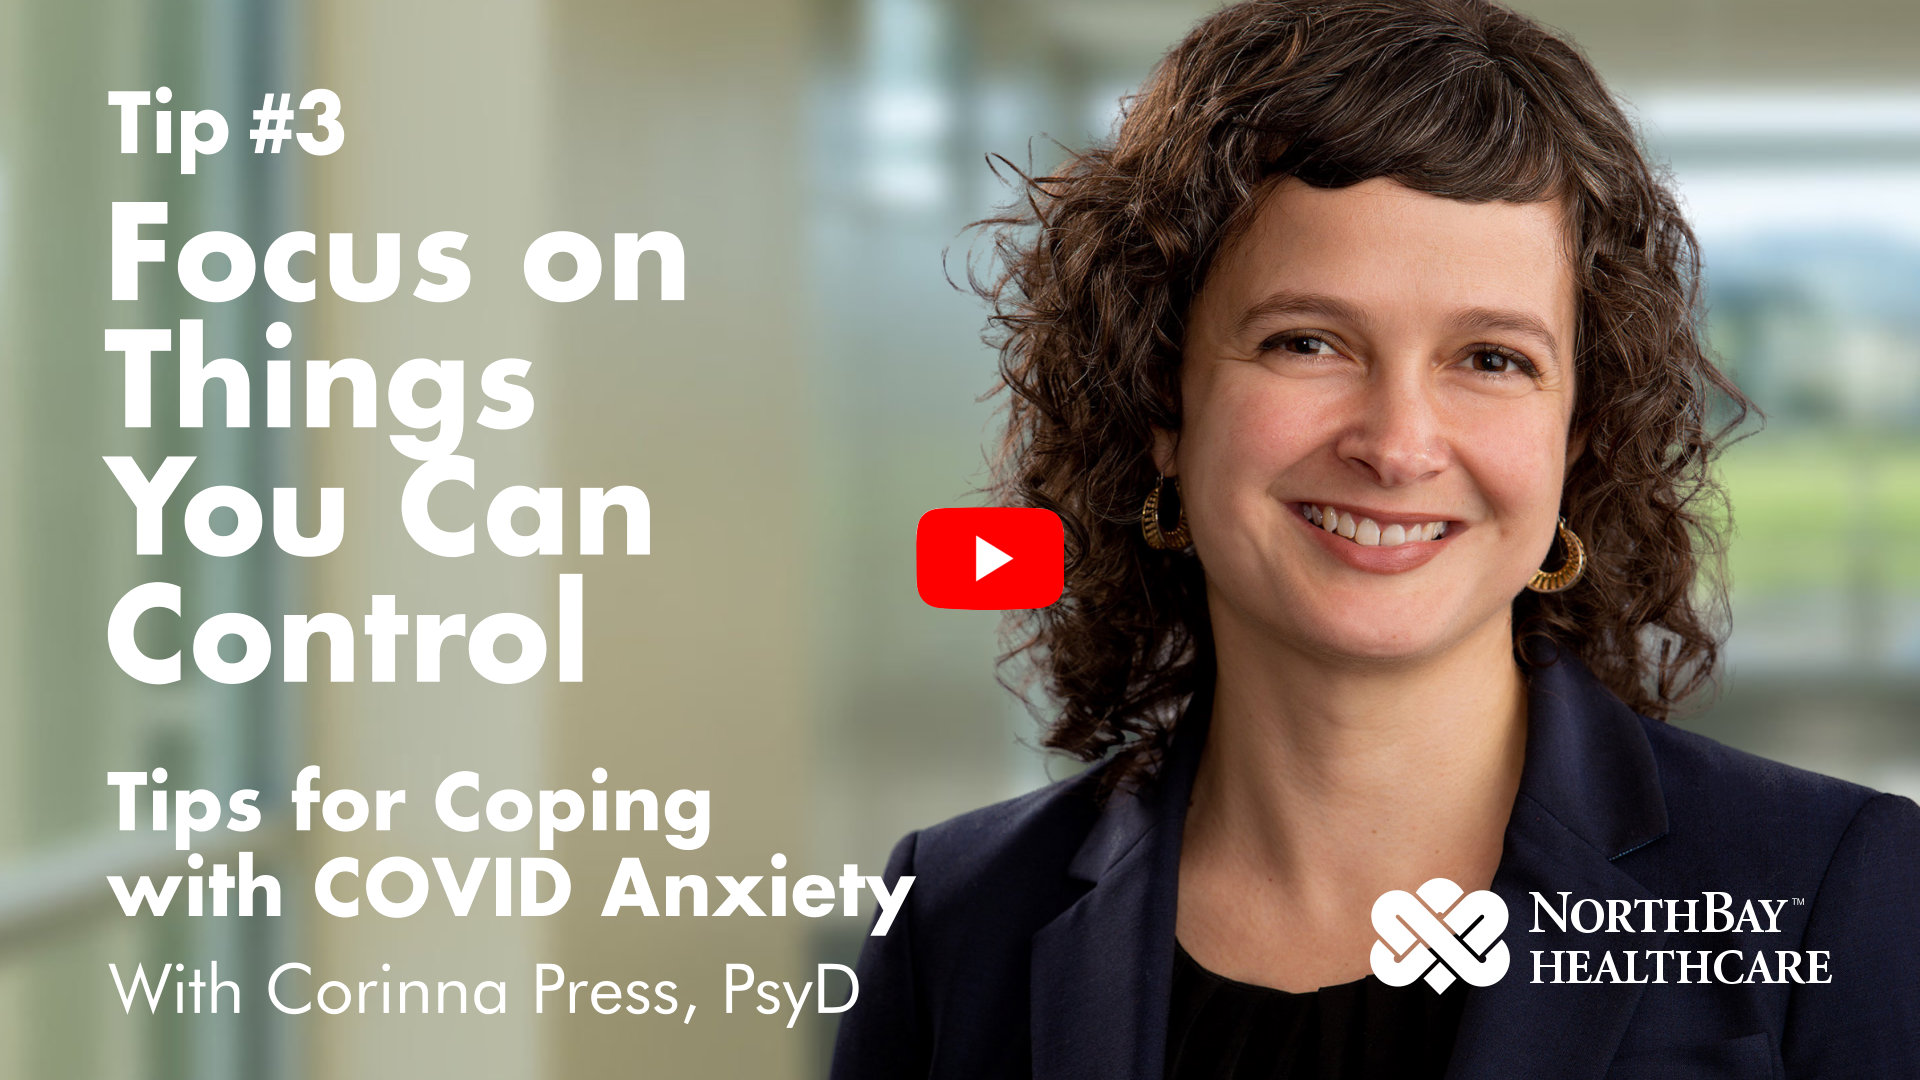 Coping with COVID Anxiety: Tip #3